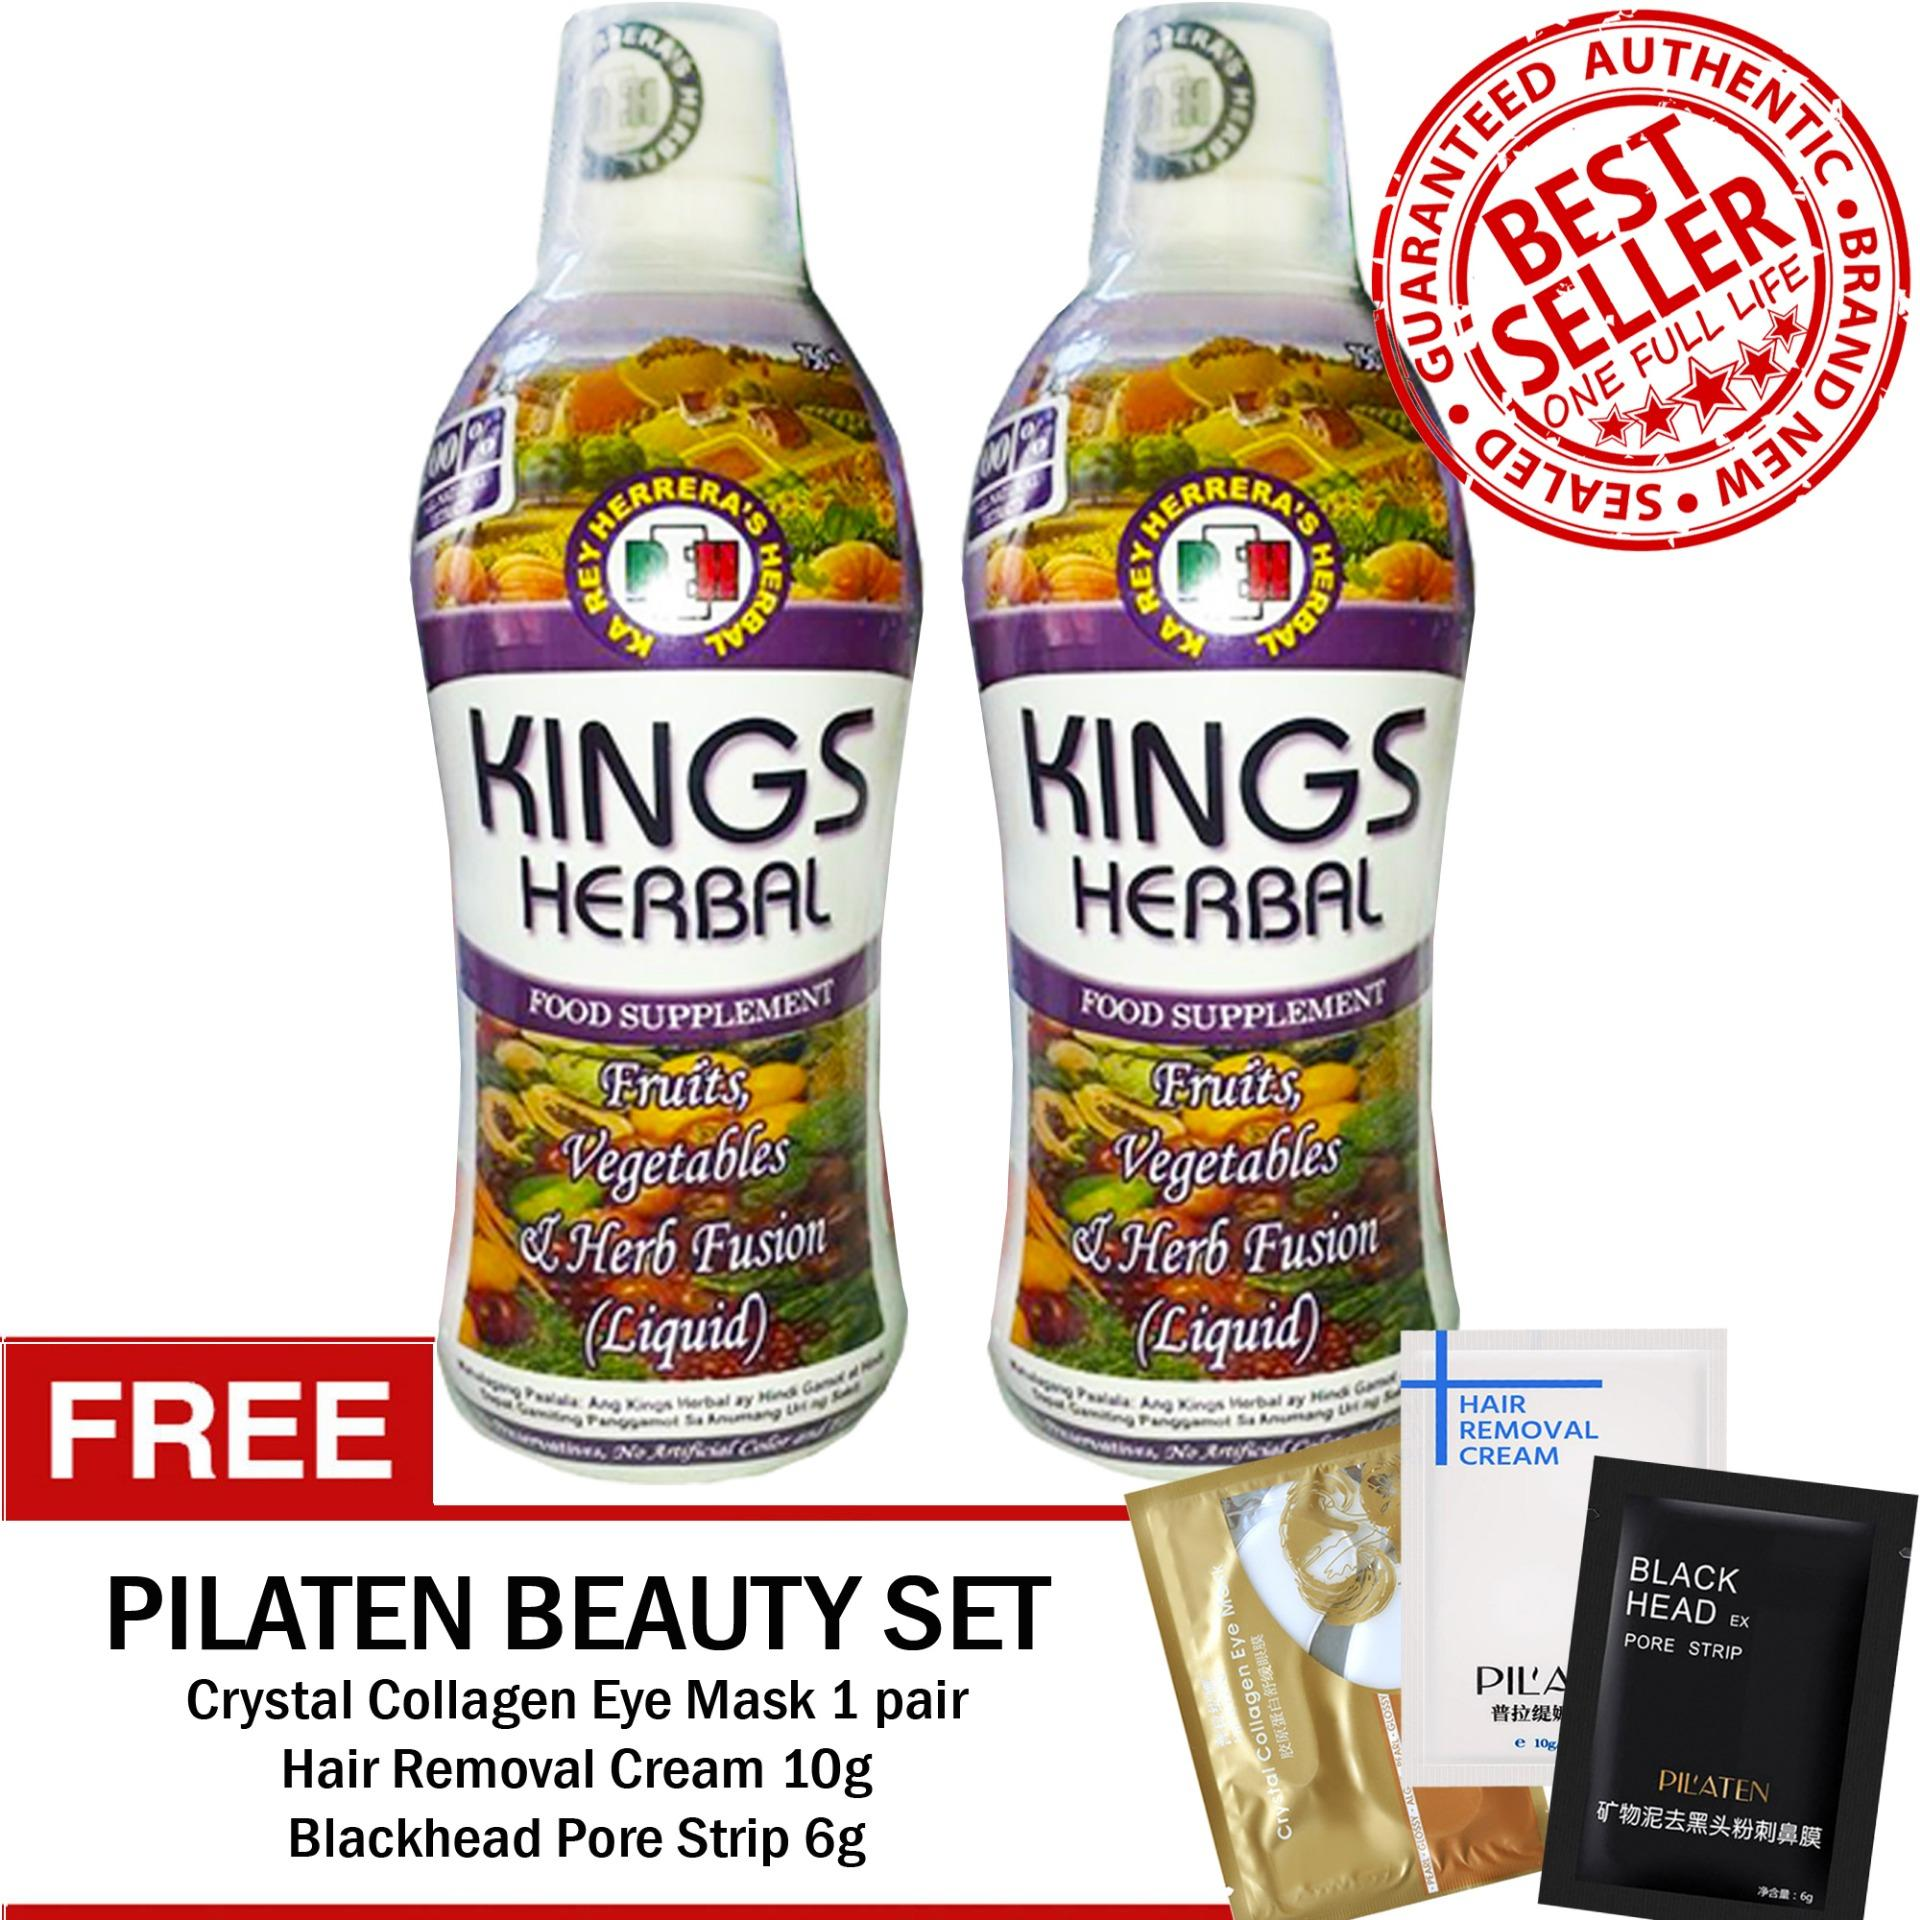 Juices Brands Fruit Juice On Sale Prices Set Reviews In Tricajuice Reh Kings Herbal 2 Bottles With Free Pilaten Beauty